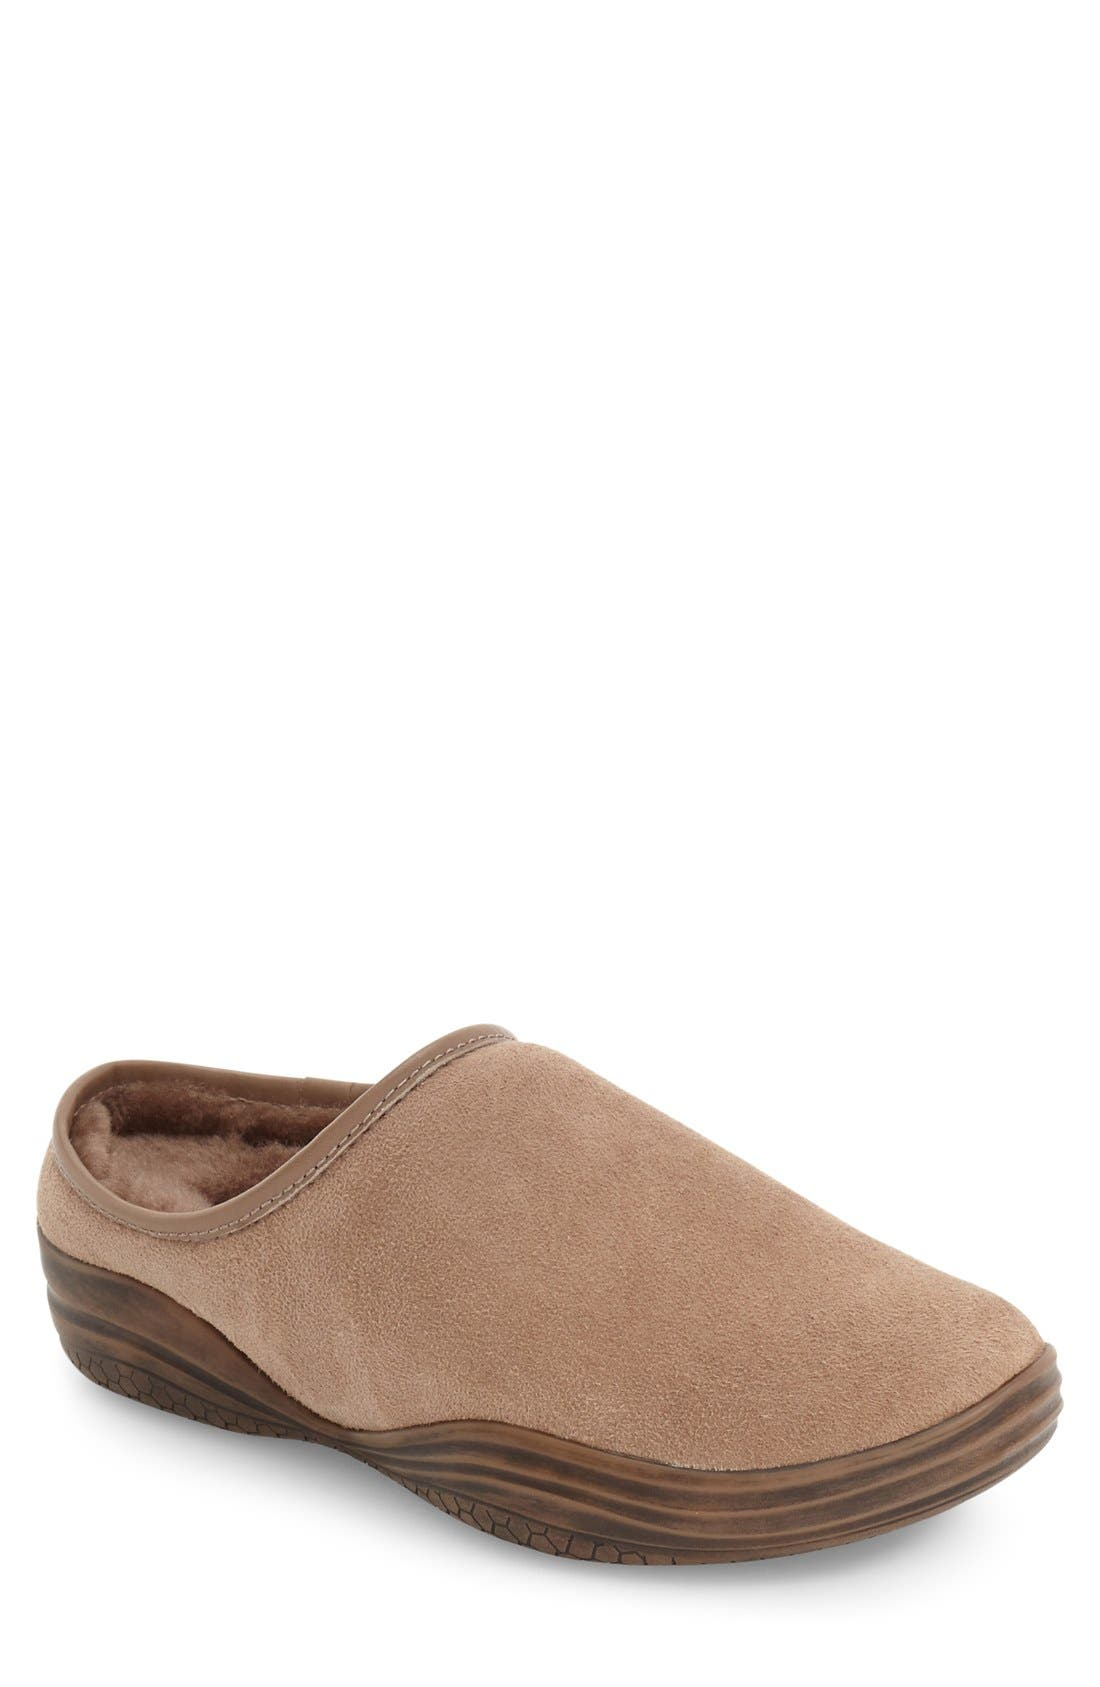 BIONICA Women's 'Stamford' Genuine Shearling Clog Slipper 42vk1